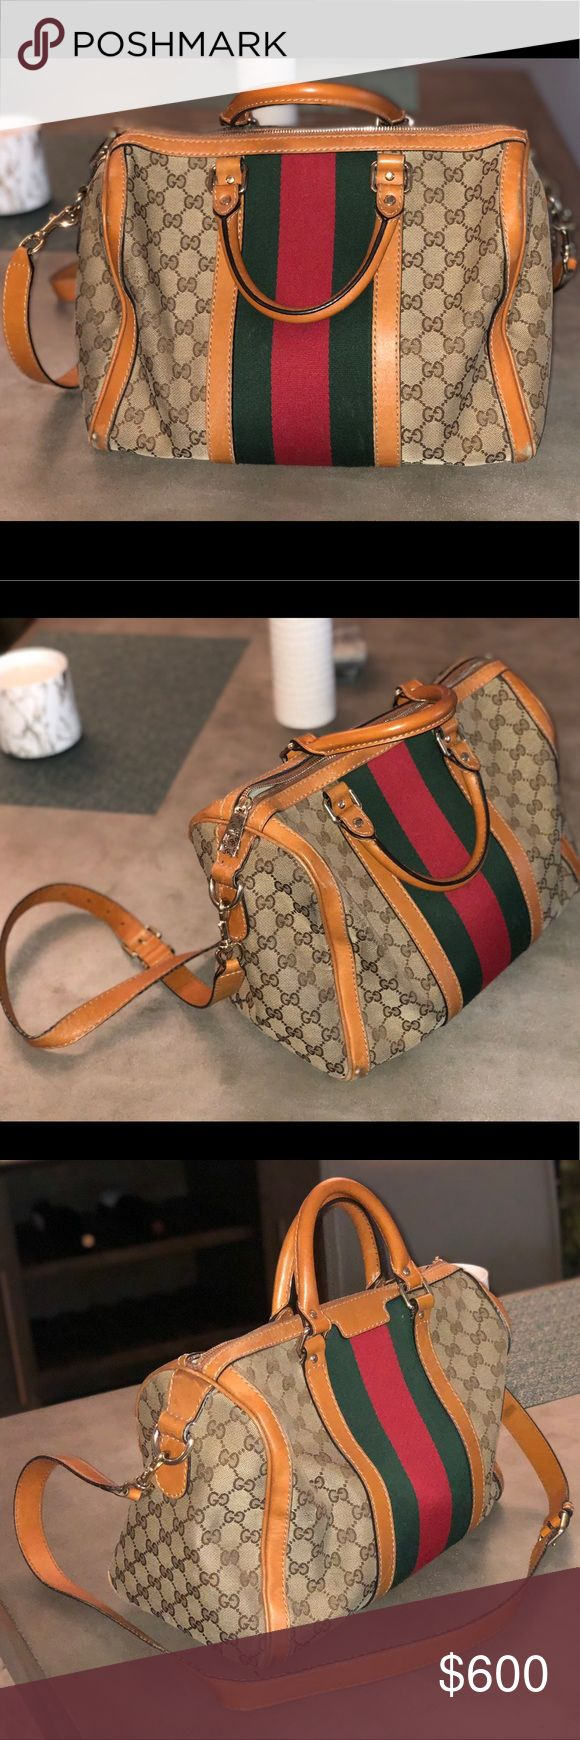 """Original GUCCI medium Boston bag Authentic GUCCI vintage web top handle Boston bag in tan leather, red, green, and web canvas and gold details Worn with love, with scuffing on the leather on all four bottom corners and some slight pen markings on inside canvas, but all are out of sight The shoulder strap is adjustable and detachable, and the double top handle is a 4"""" drop 13"""" L x 9"""" H x 7"""" W Gucci Bags Shoulder Bags"""